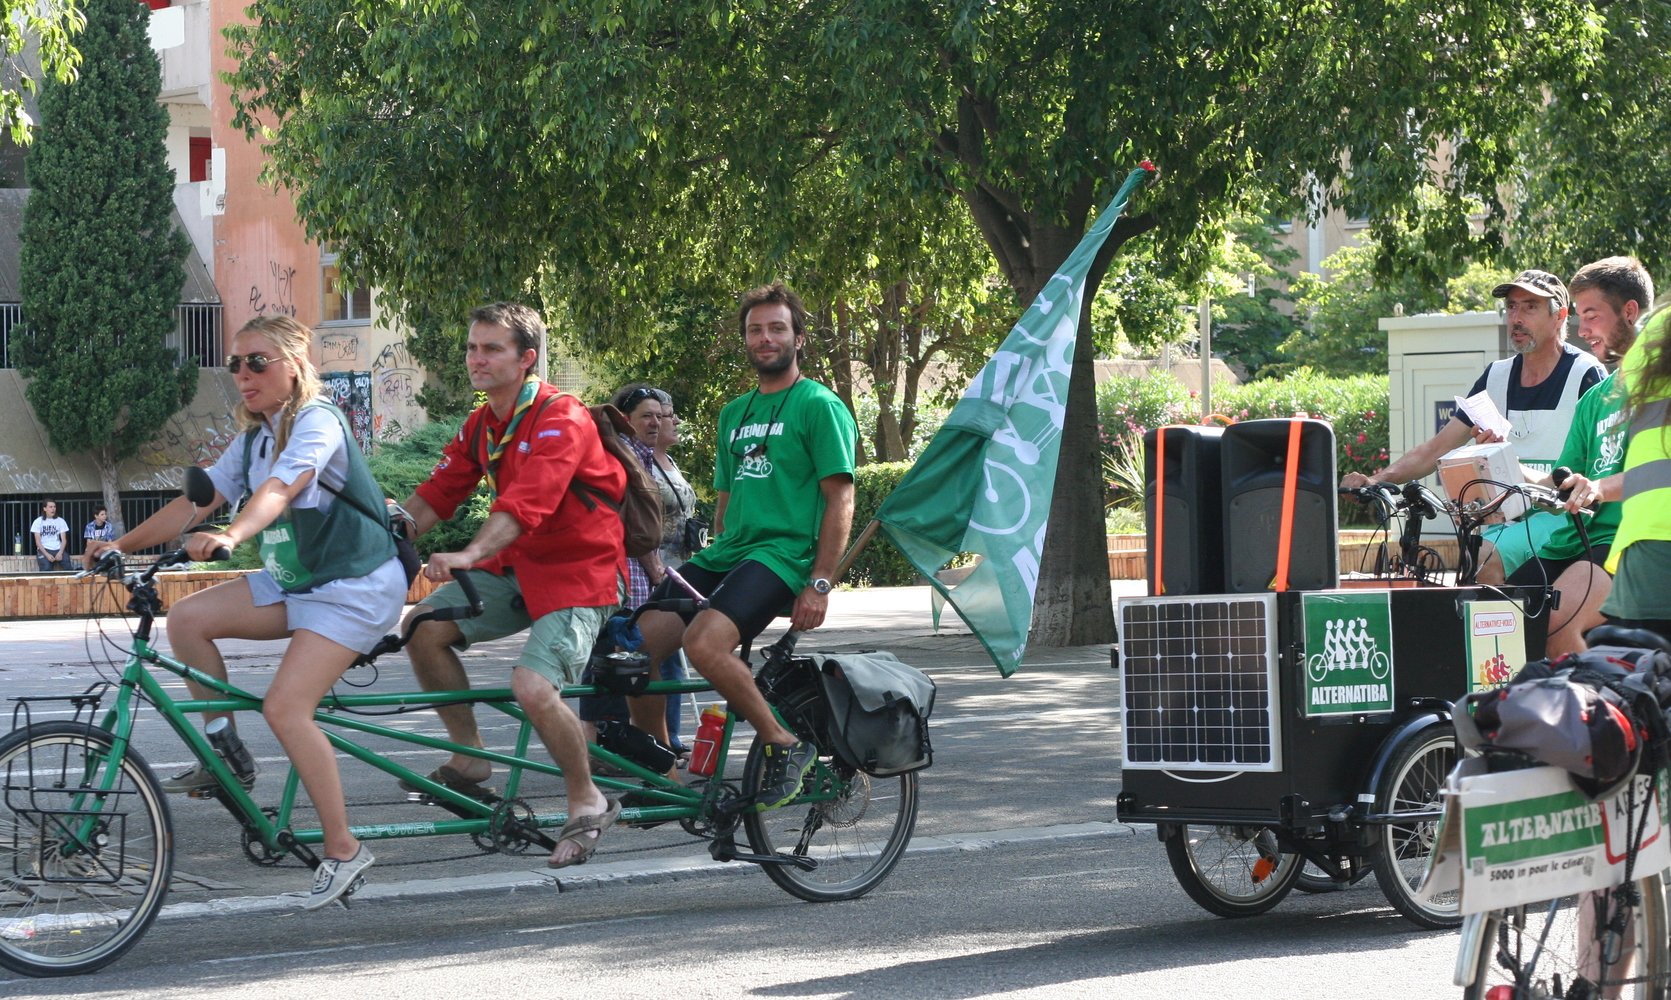 Tour Alternatiba, c'est reparti!